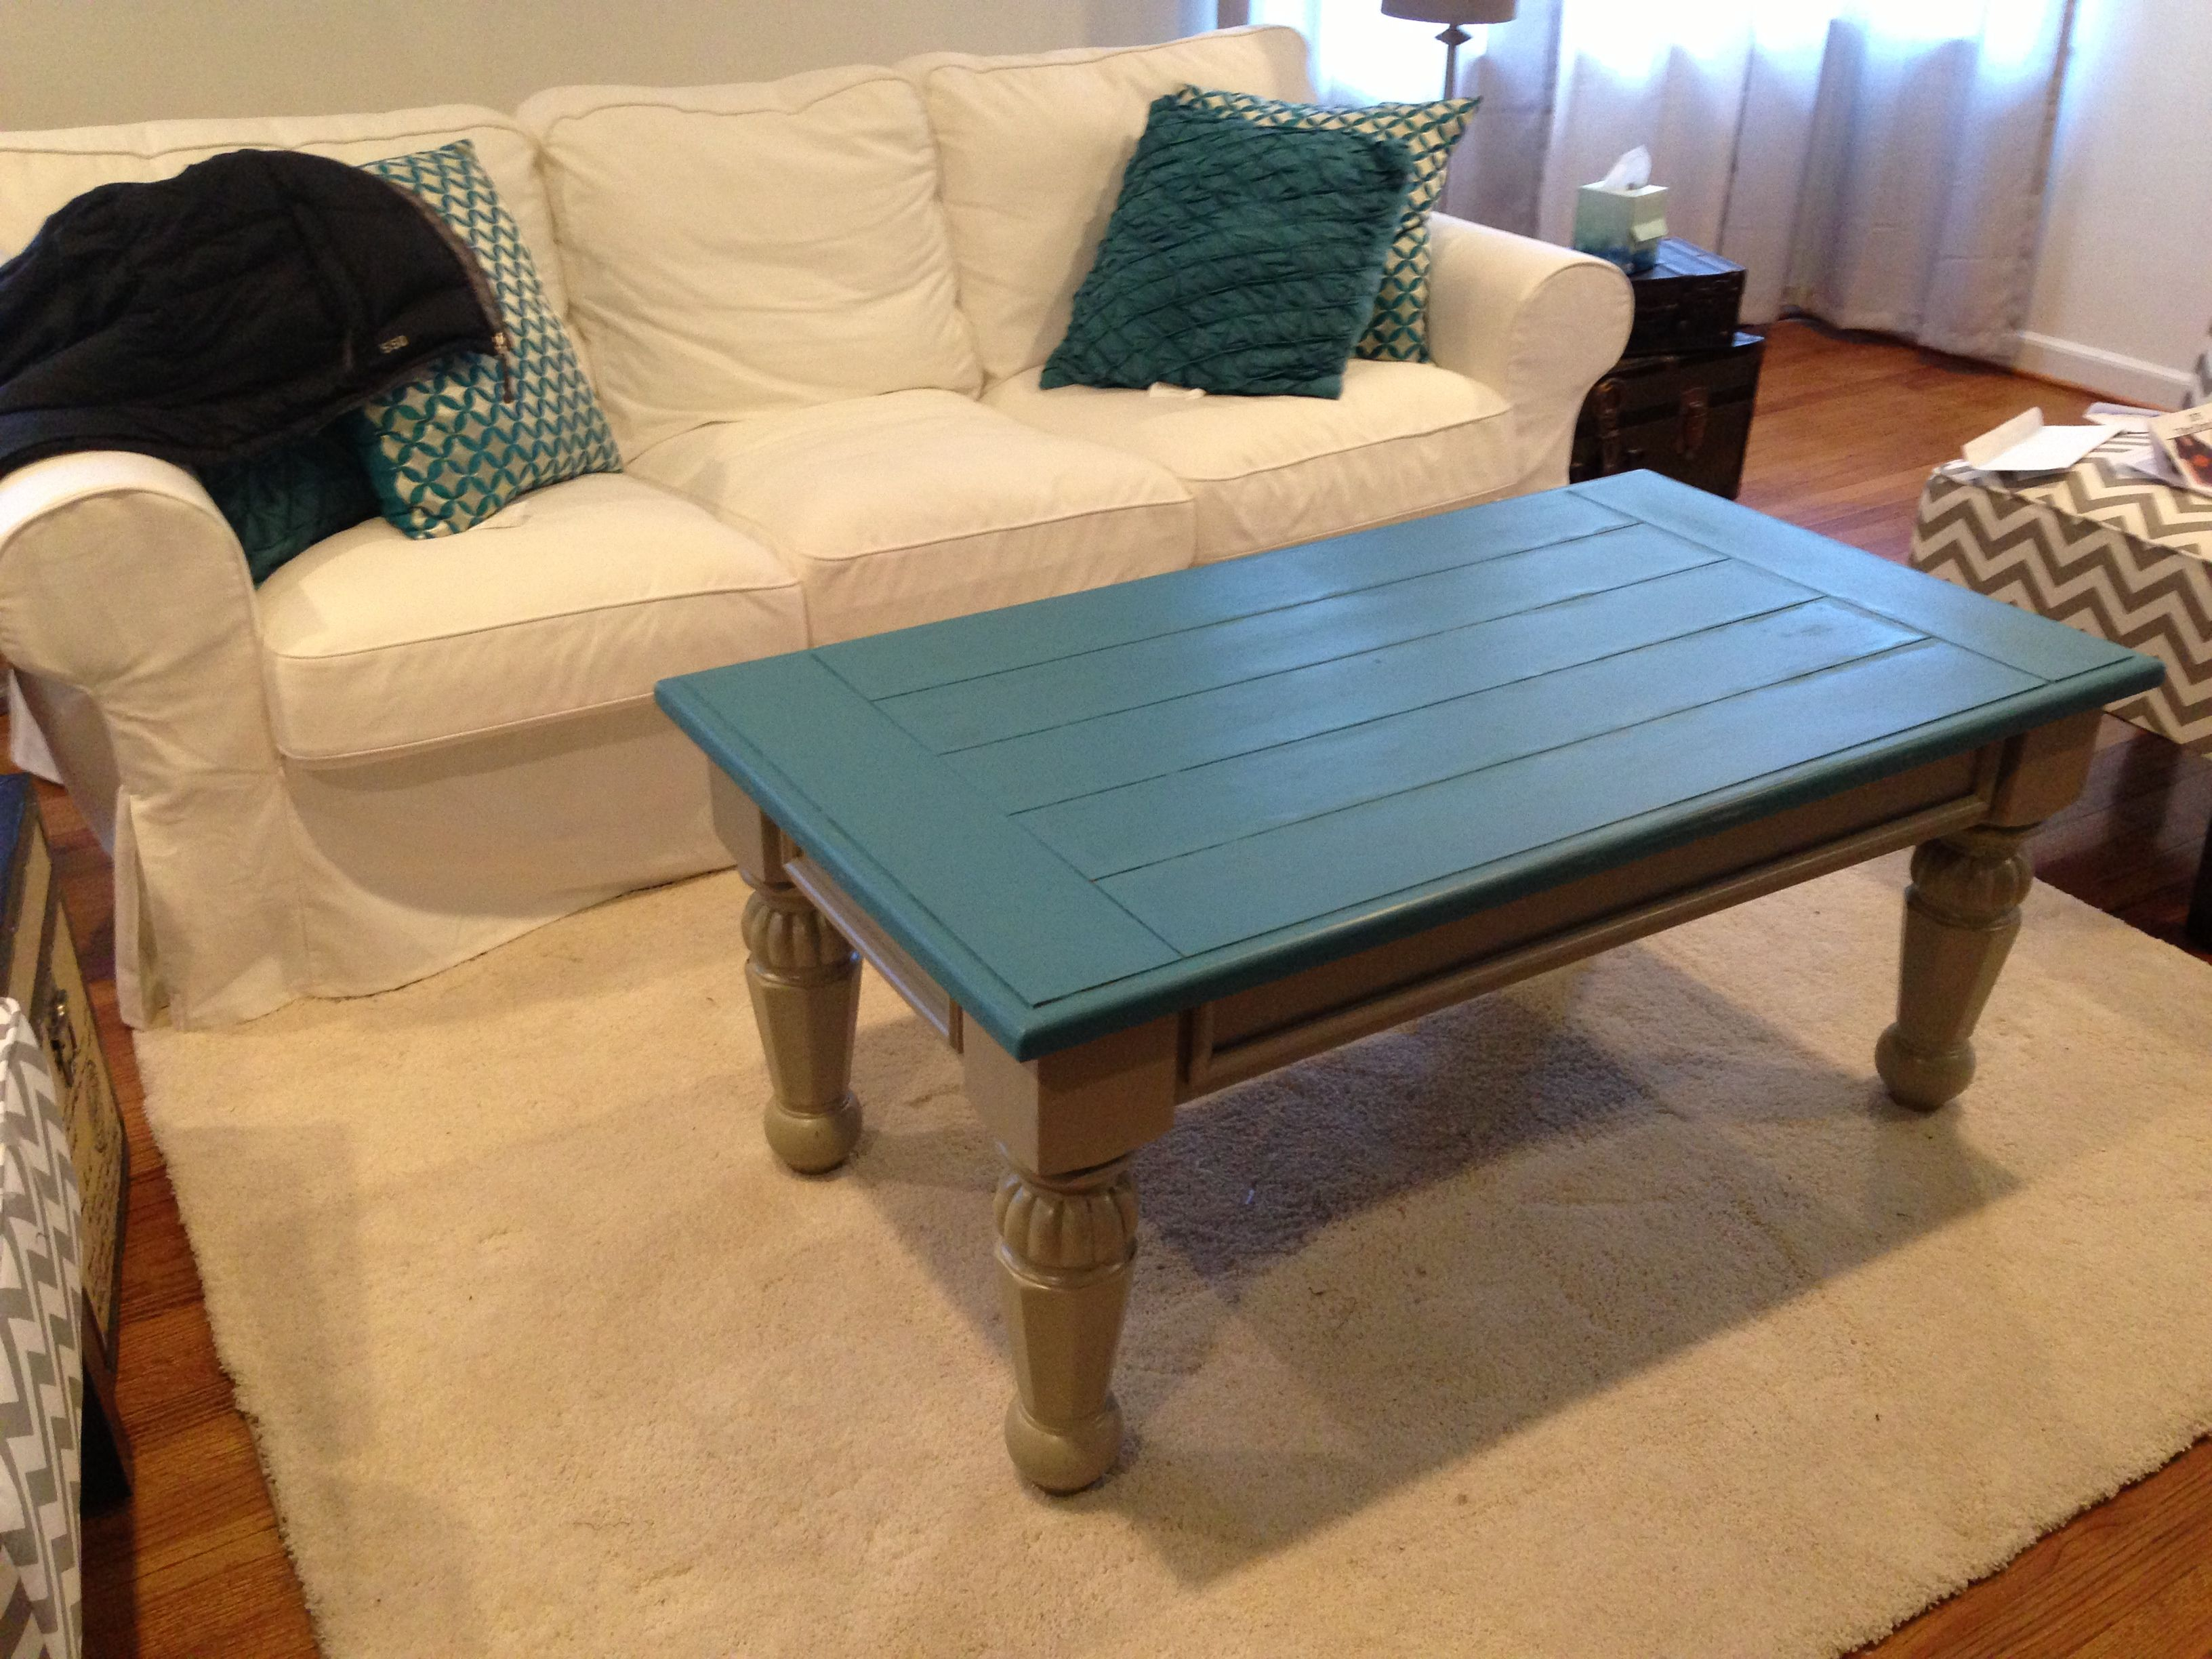 Restored this coffee table- bought at garage sale with 2 end tables